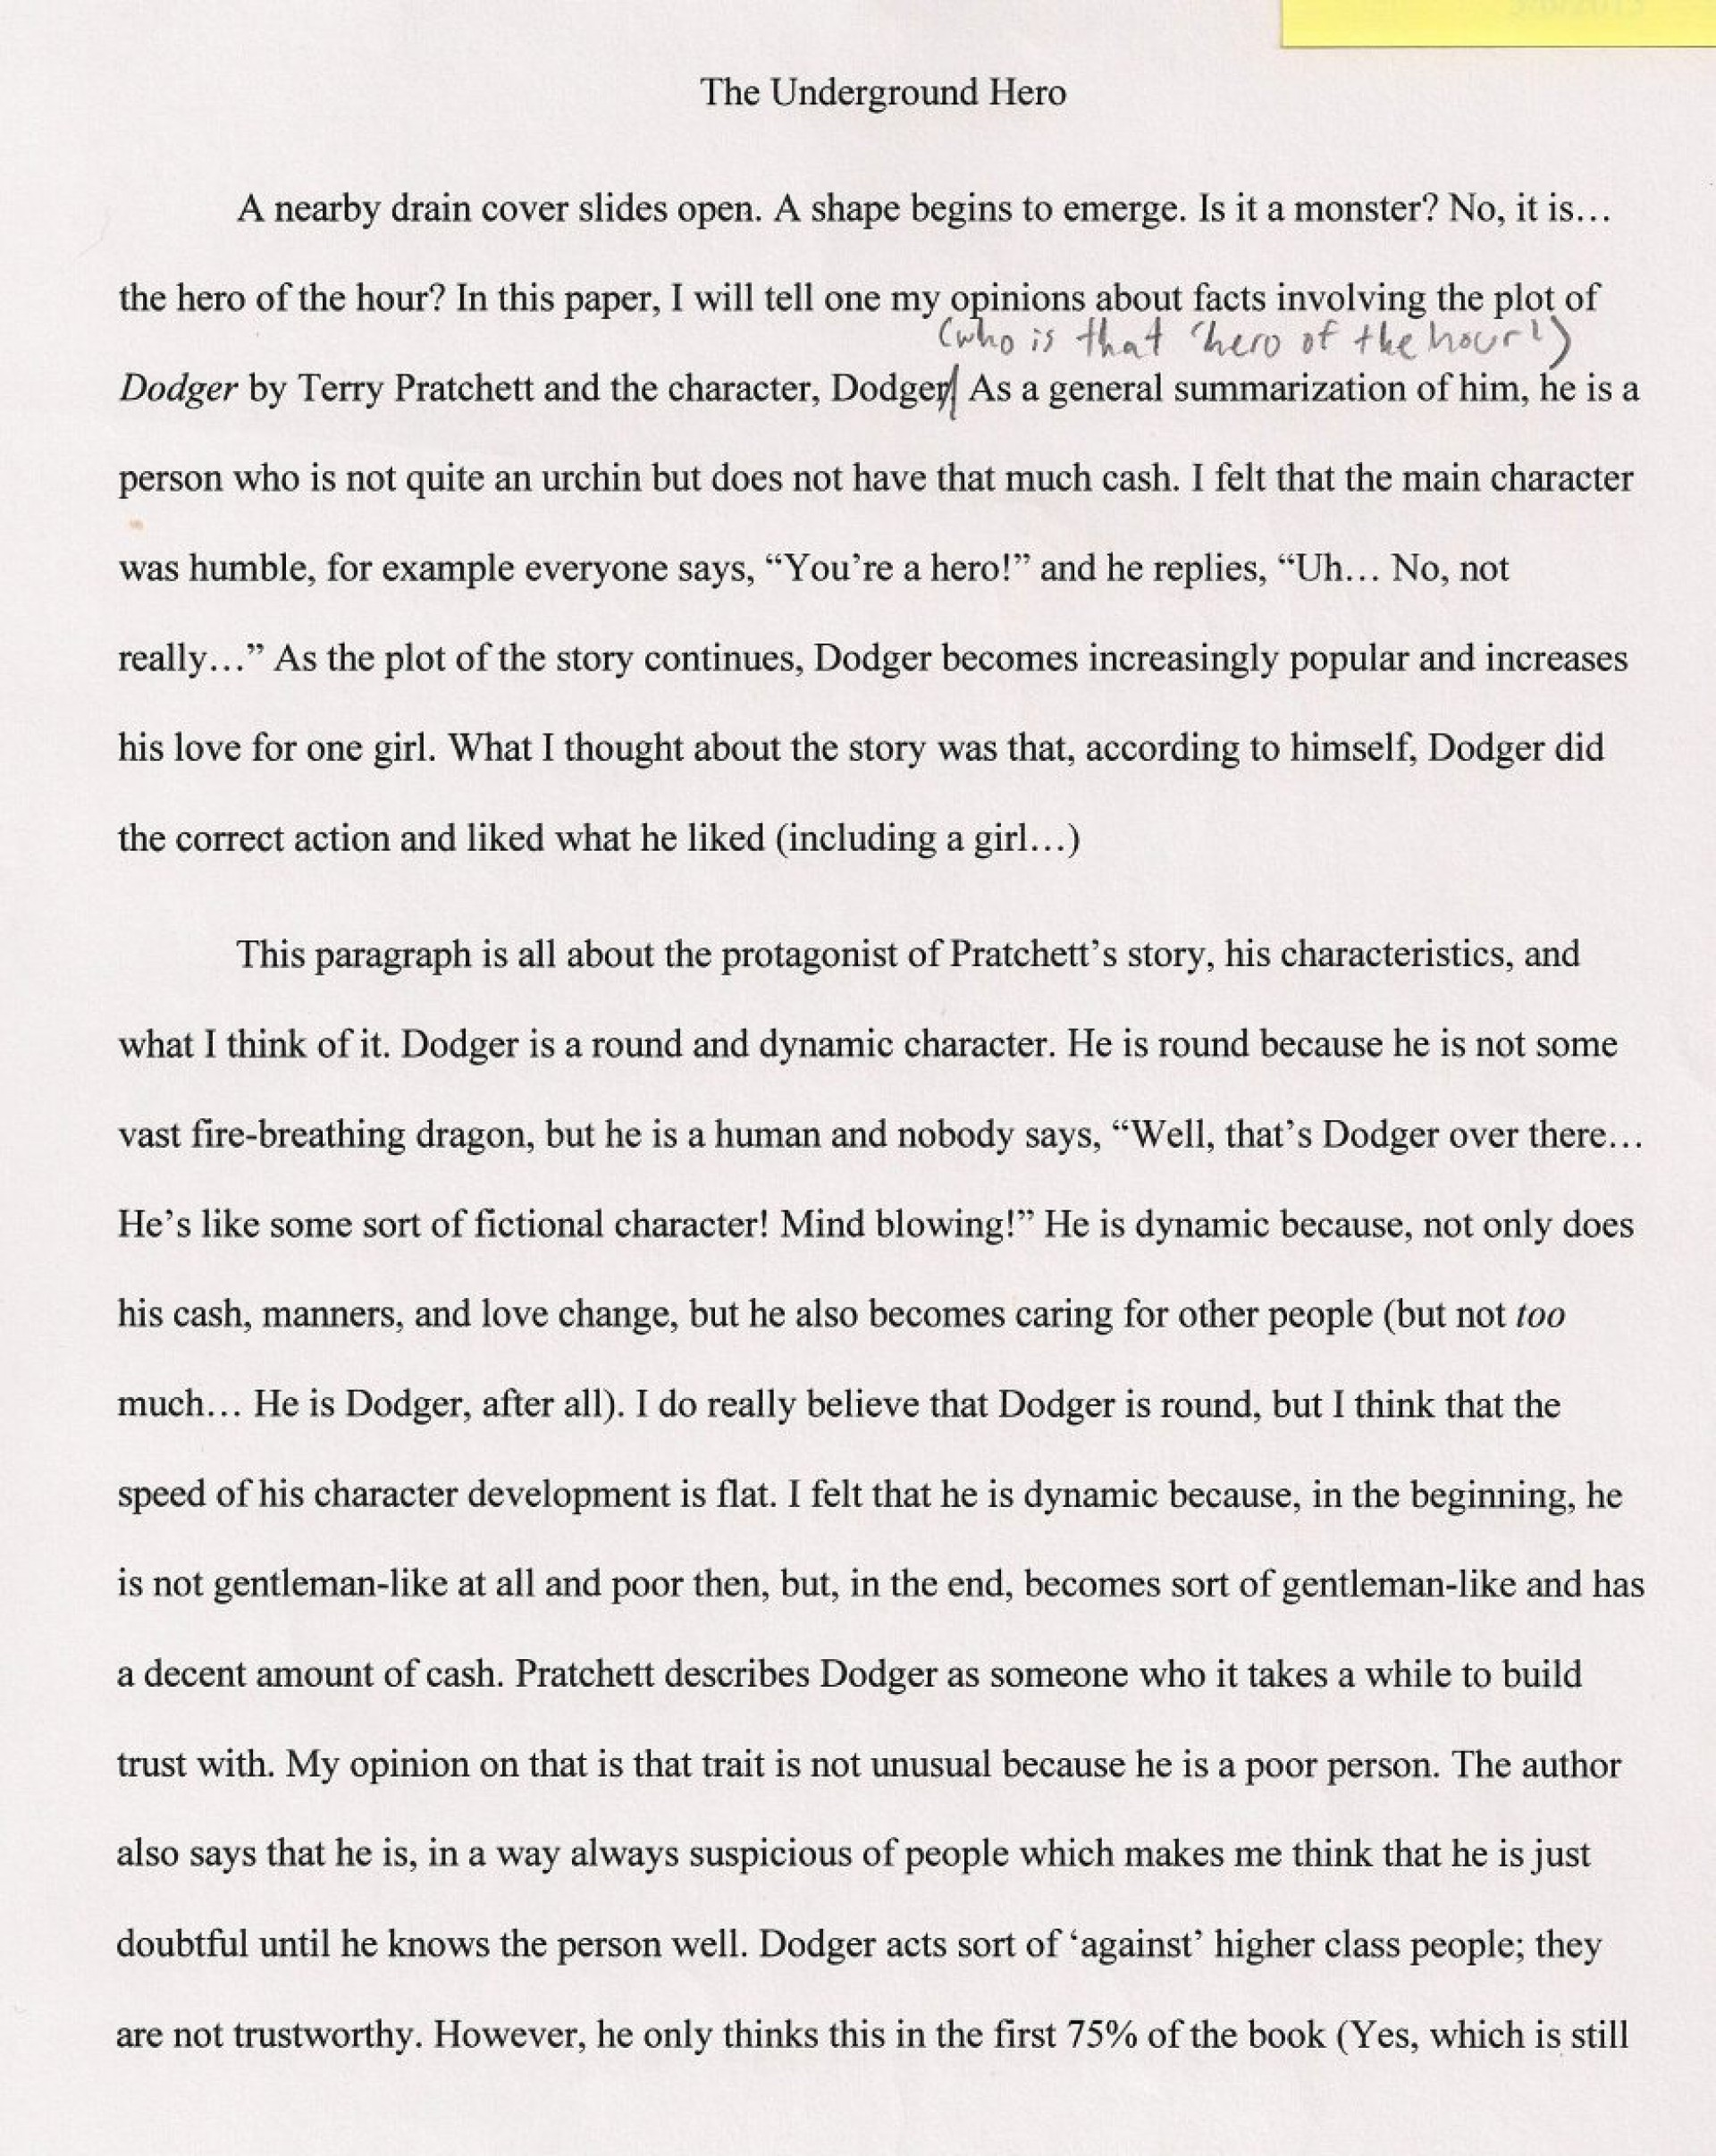 001 Essay About Real Life Heroes The Underground Hero National On Heros Journey Define Is Odysseus My True Oedipus Tragic Mom Conclusion Good Okonkwo Beowulf Example Defining Definition 936x1176 Fascinating Unsung In Secret As A 1920